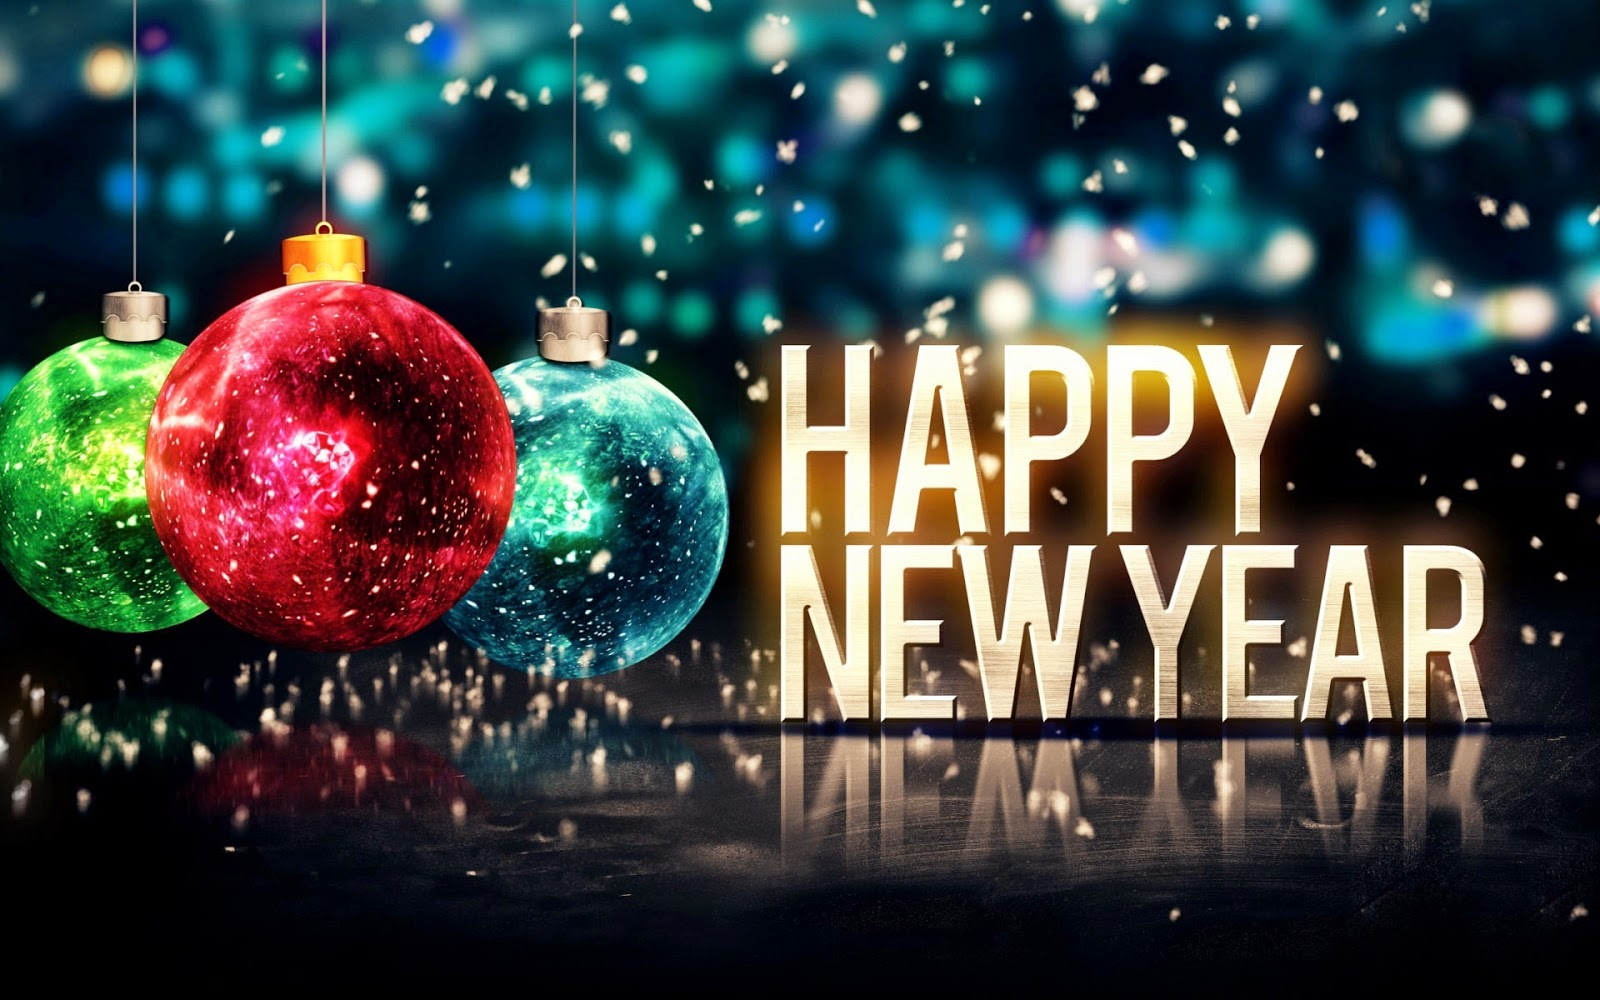 Happy New Year 2015 Wallpapers 1360 X 768 Free Download Happy New